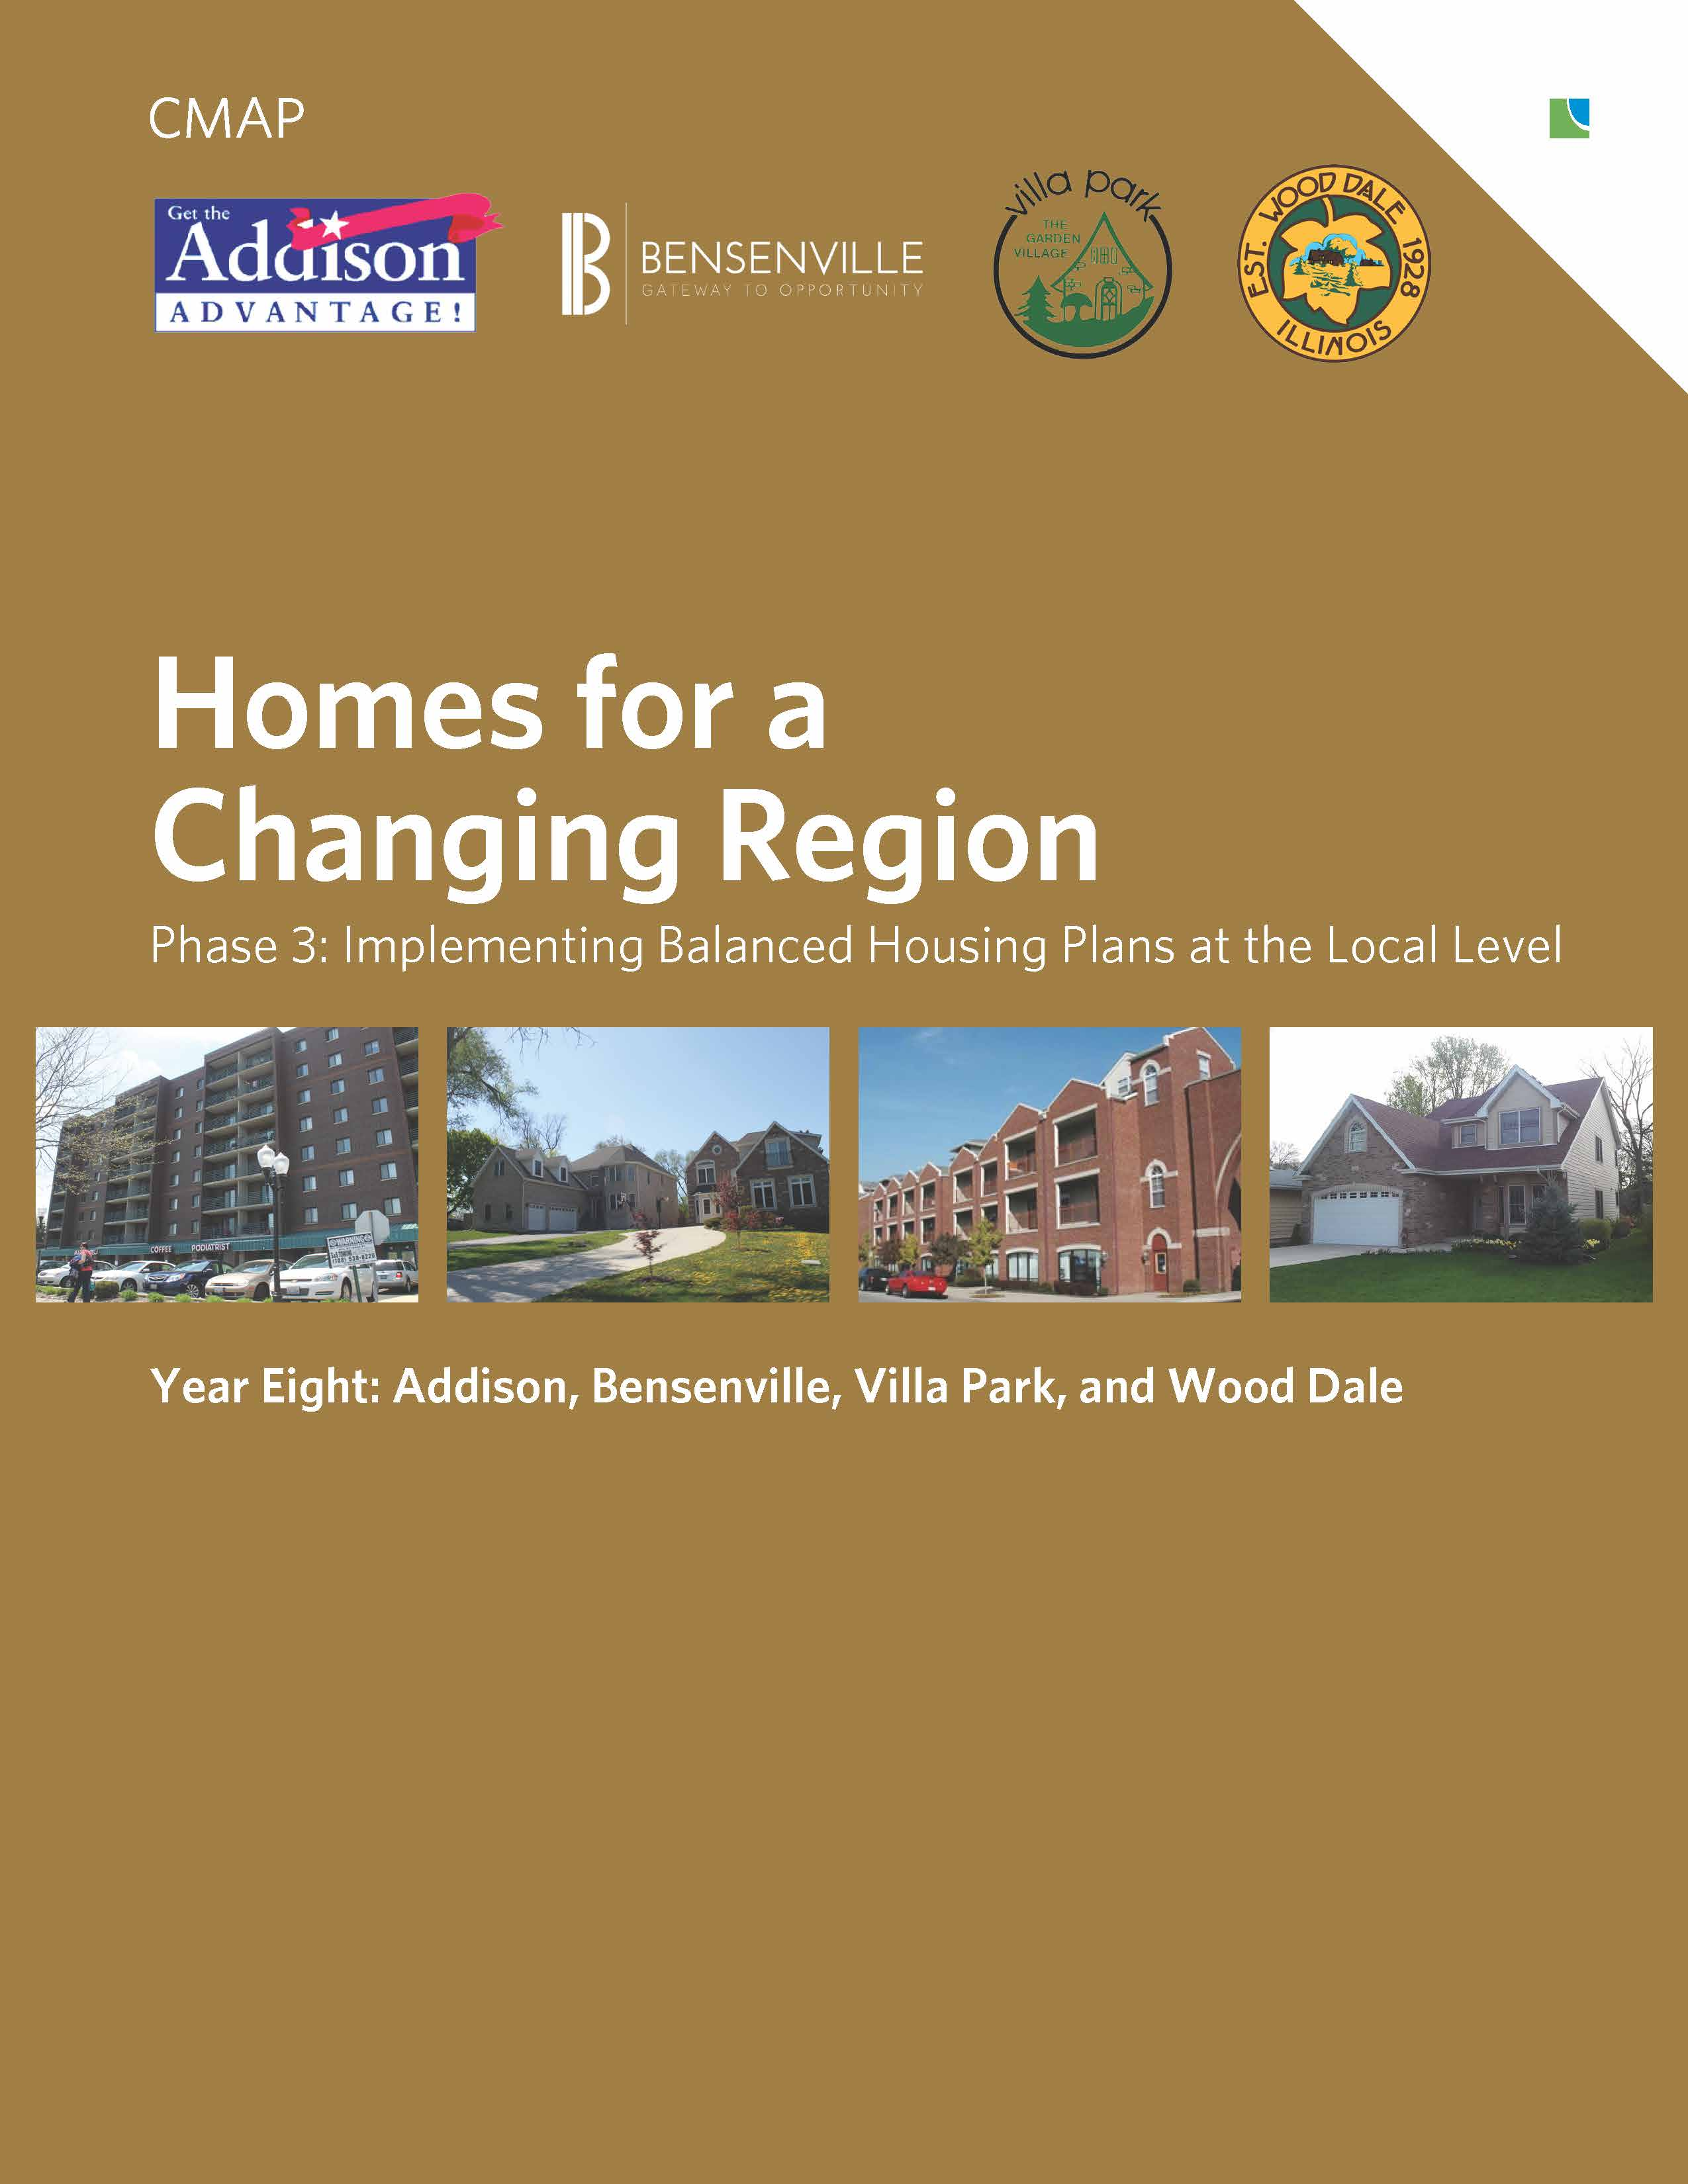 homes for a changing region - cmap